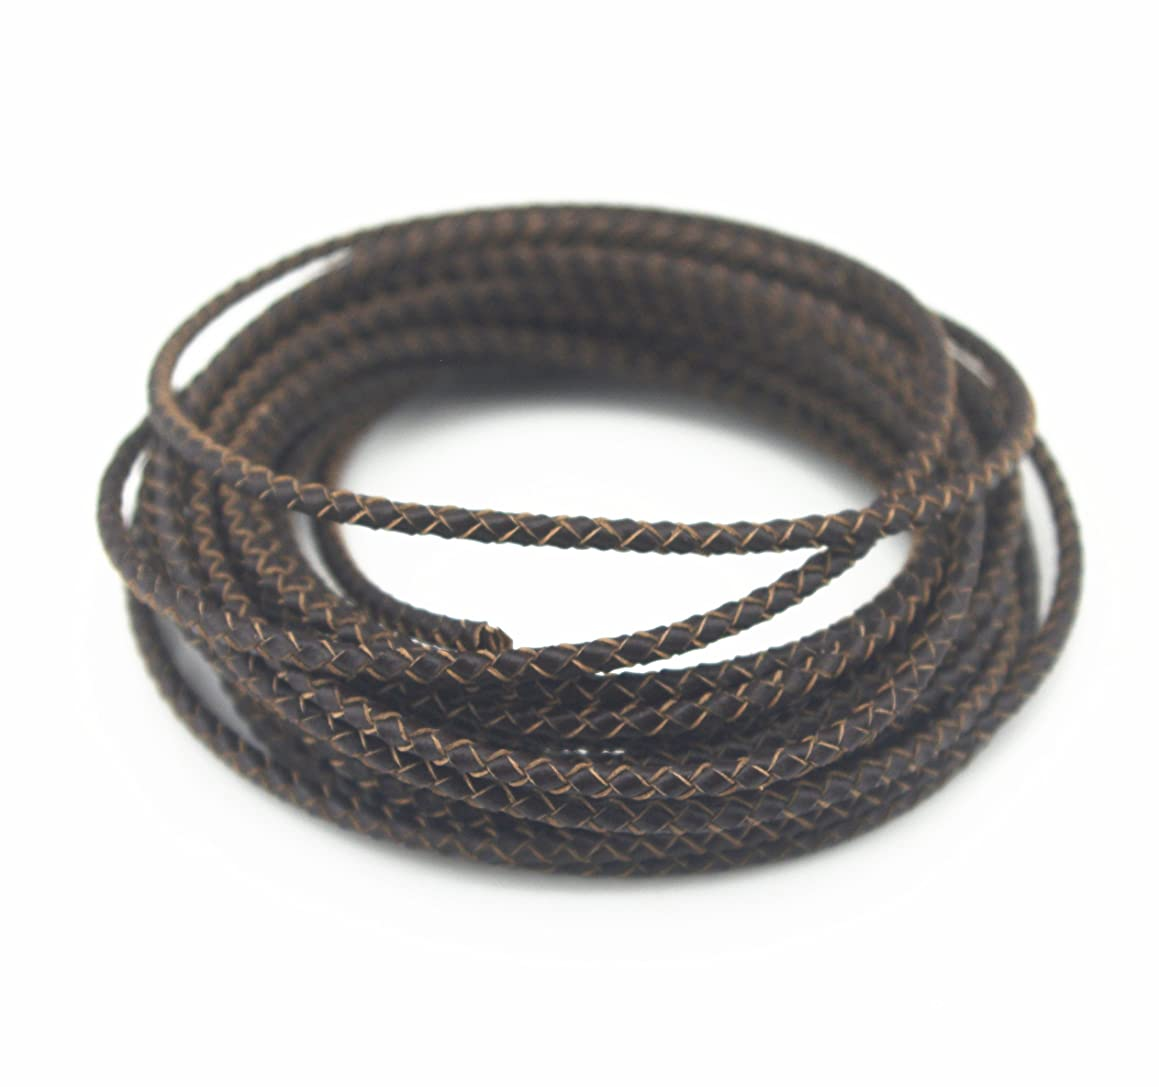 Glory Qin 5 Yards Round Folded Bolo Braided Genuine Leather Cord for Making Bracelet & Jewelry (Dark Brown, 3mm)